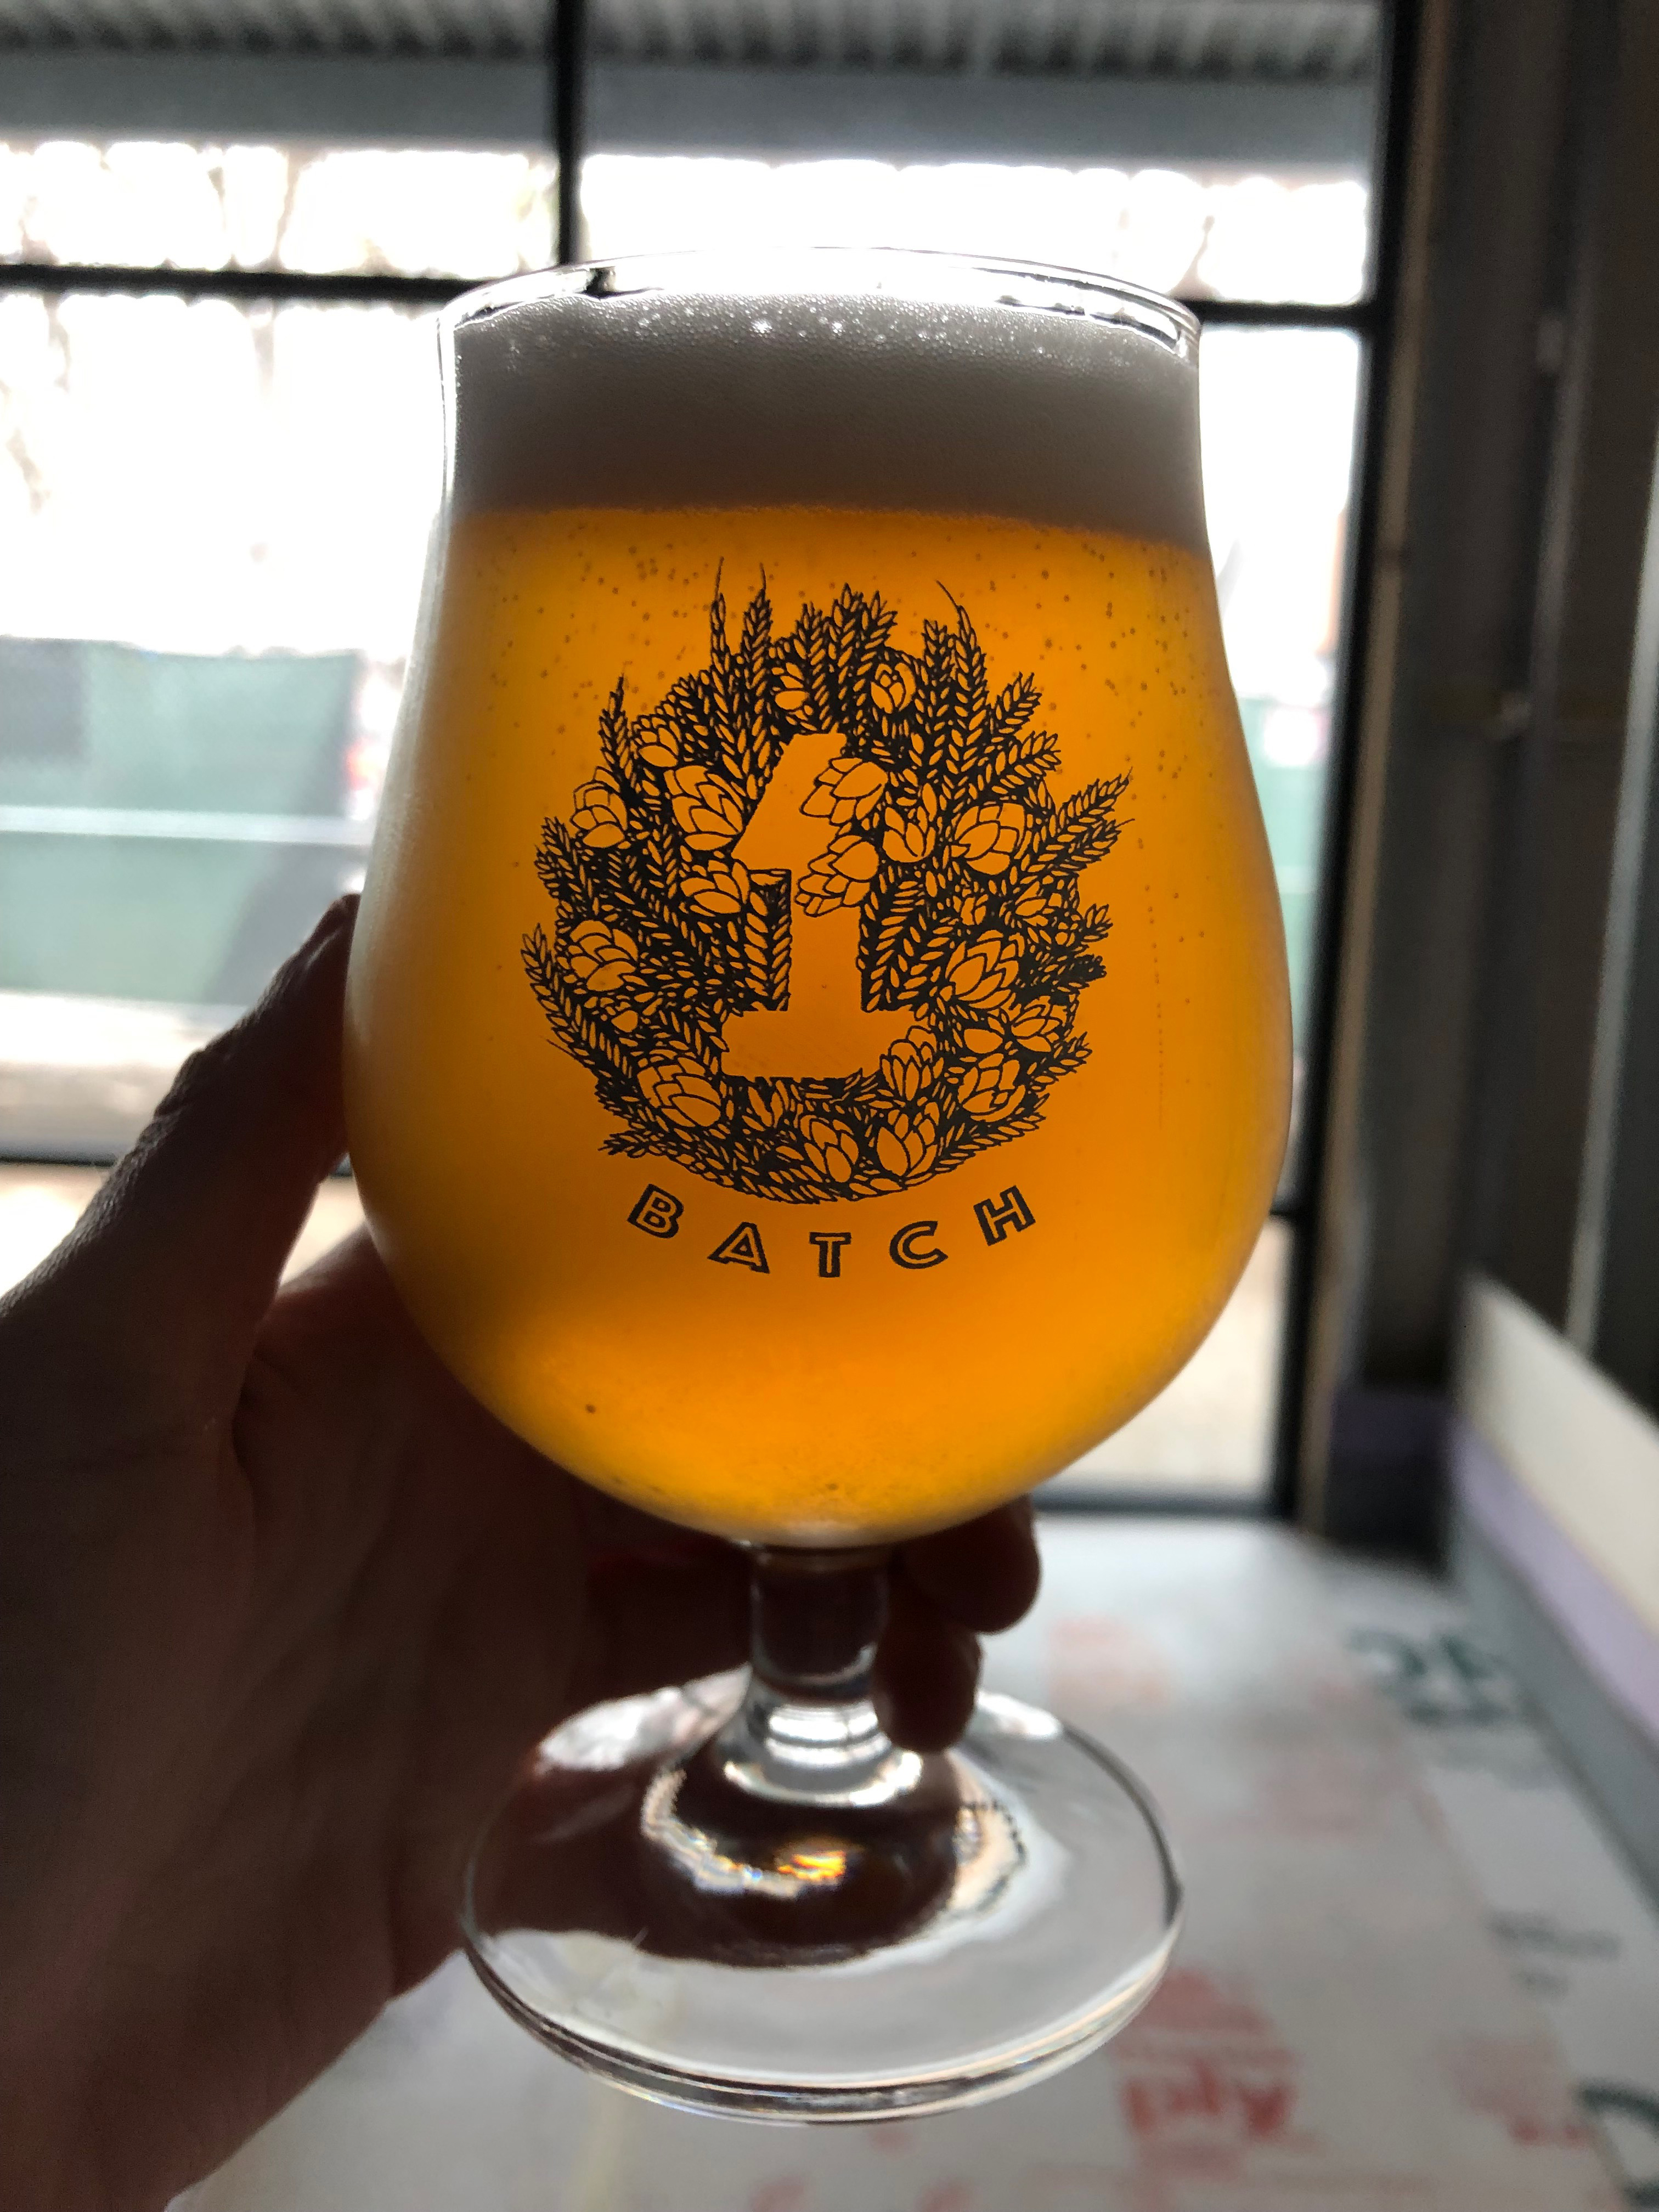 A beer from Batch